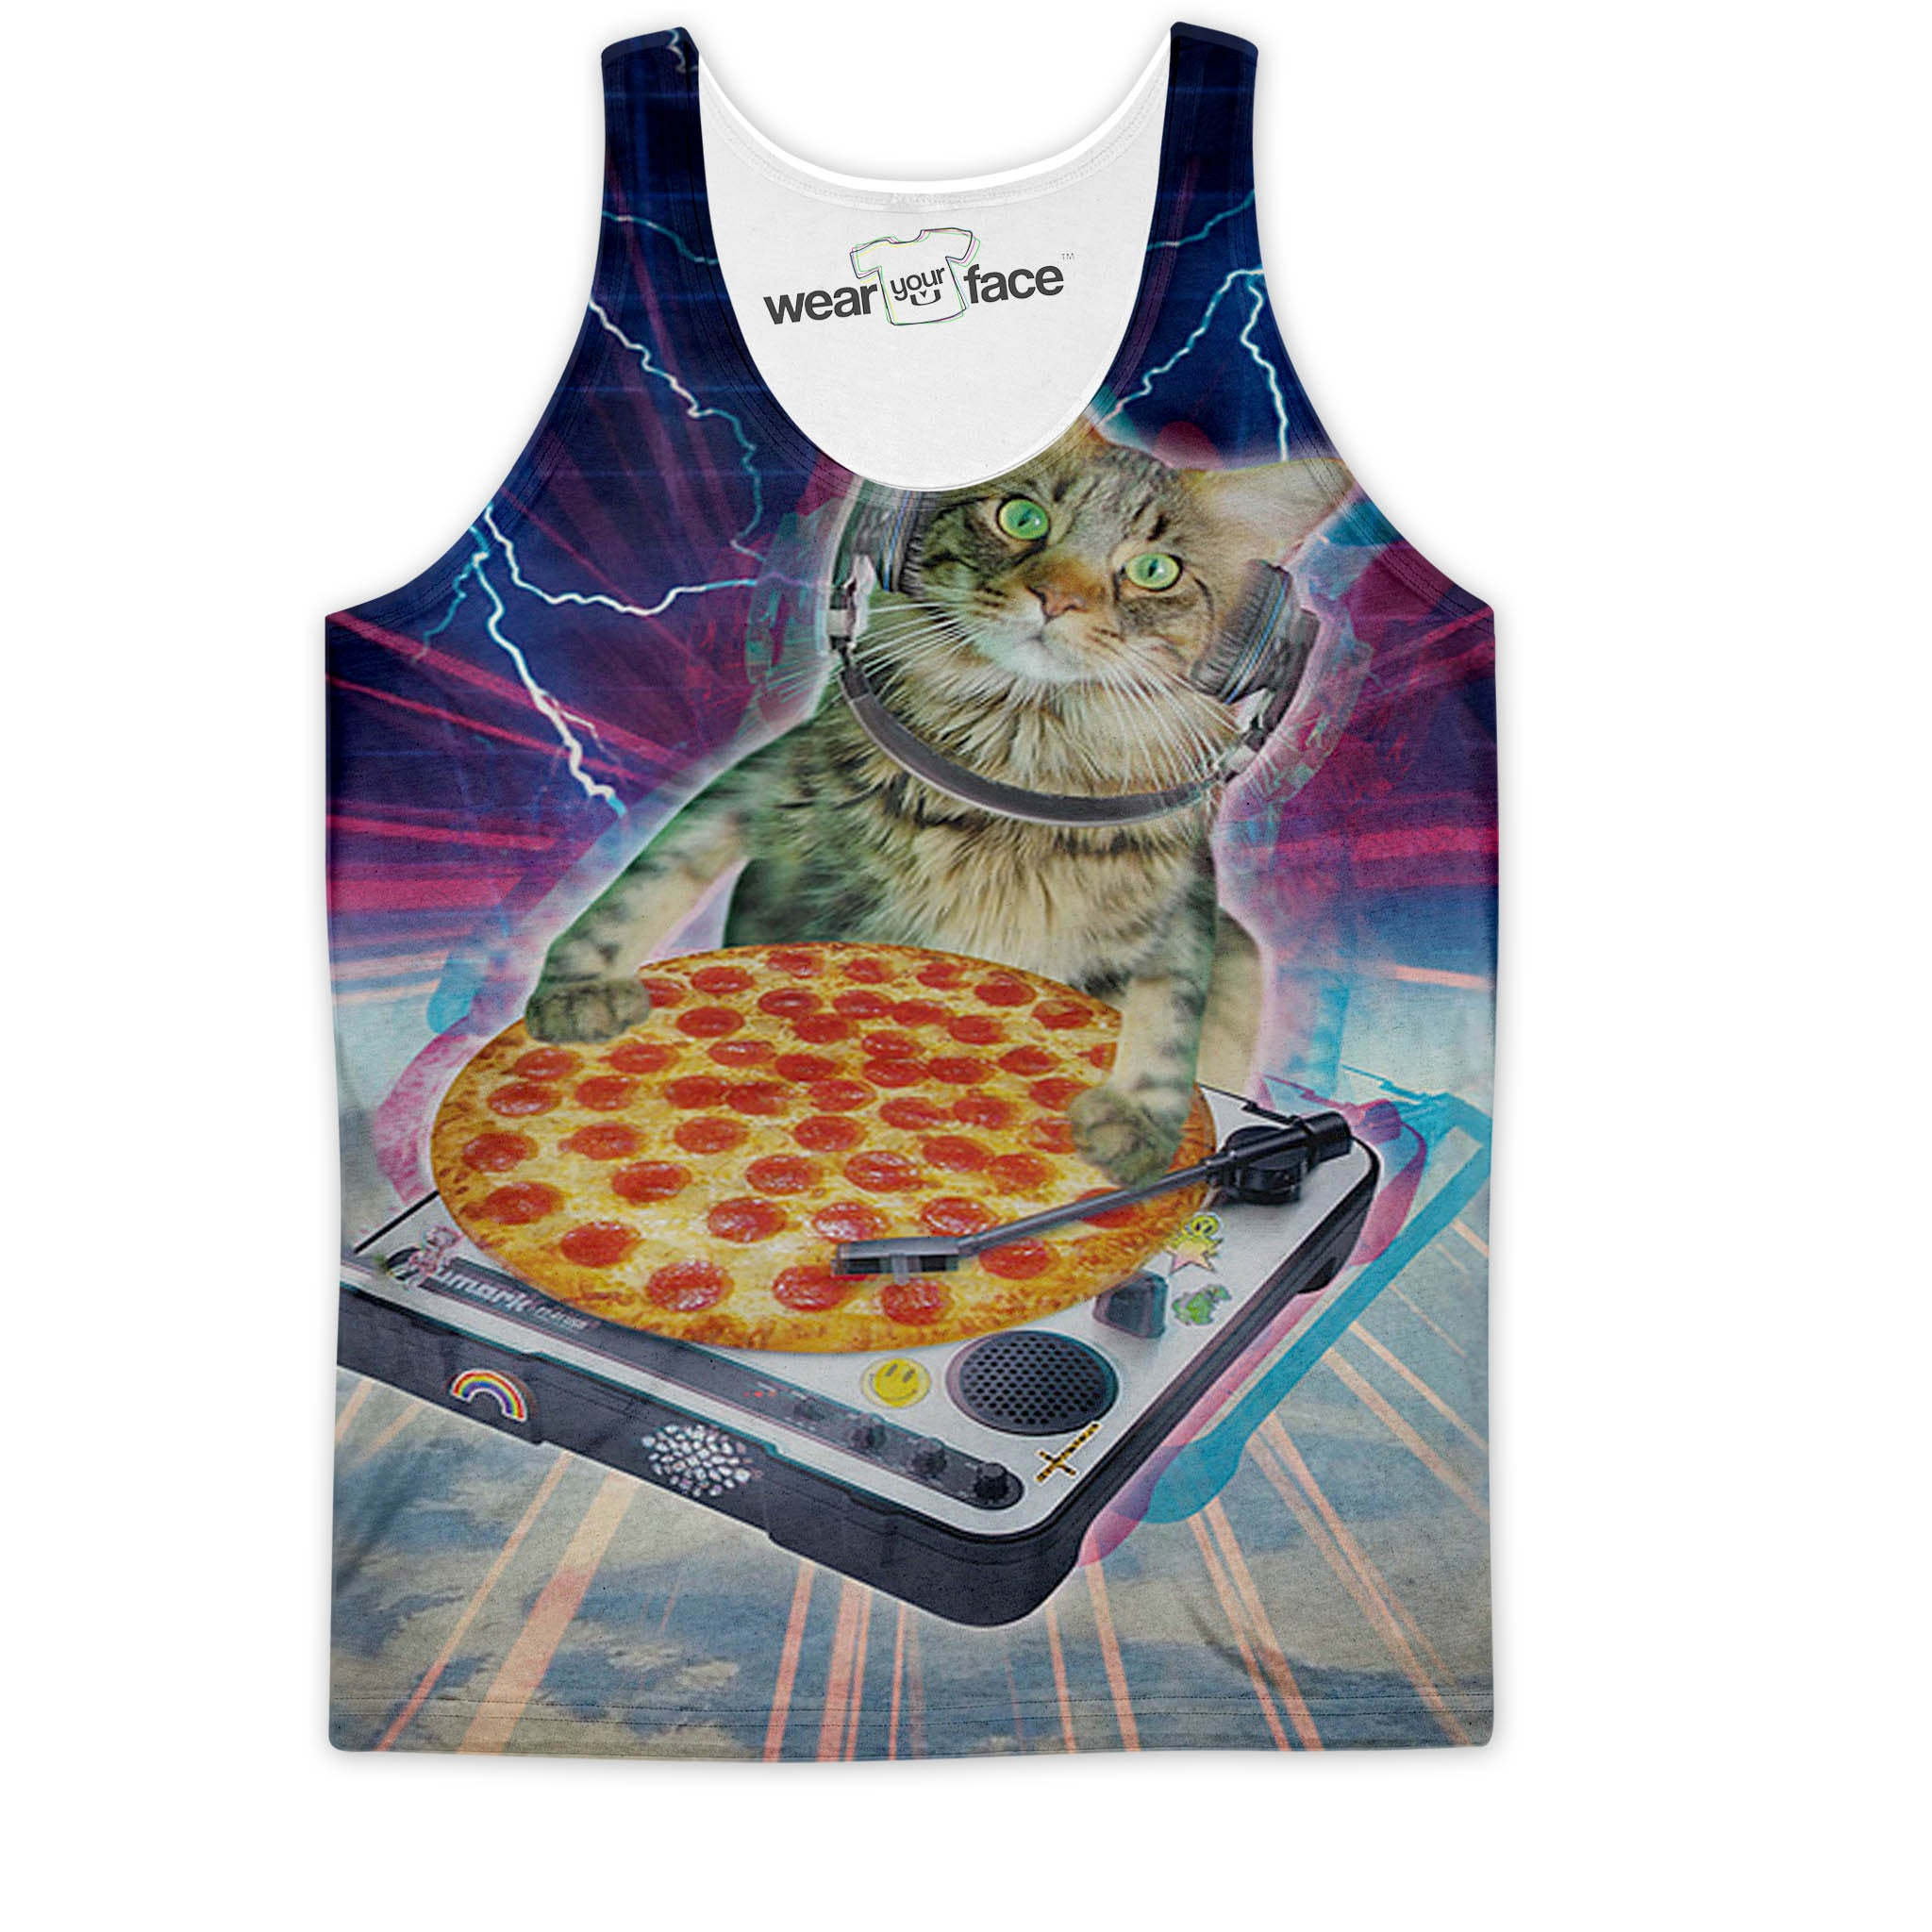 DJ Purrfect Pizza Tank